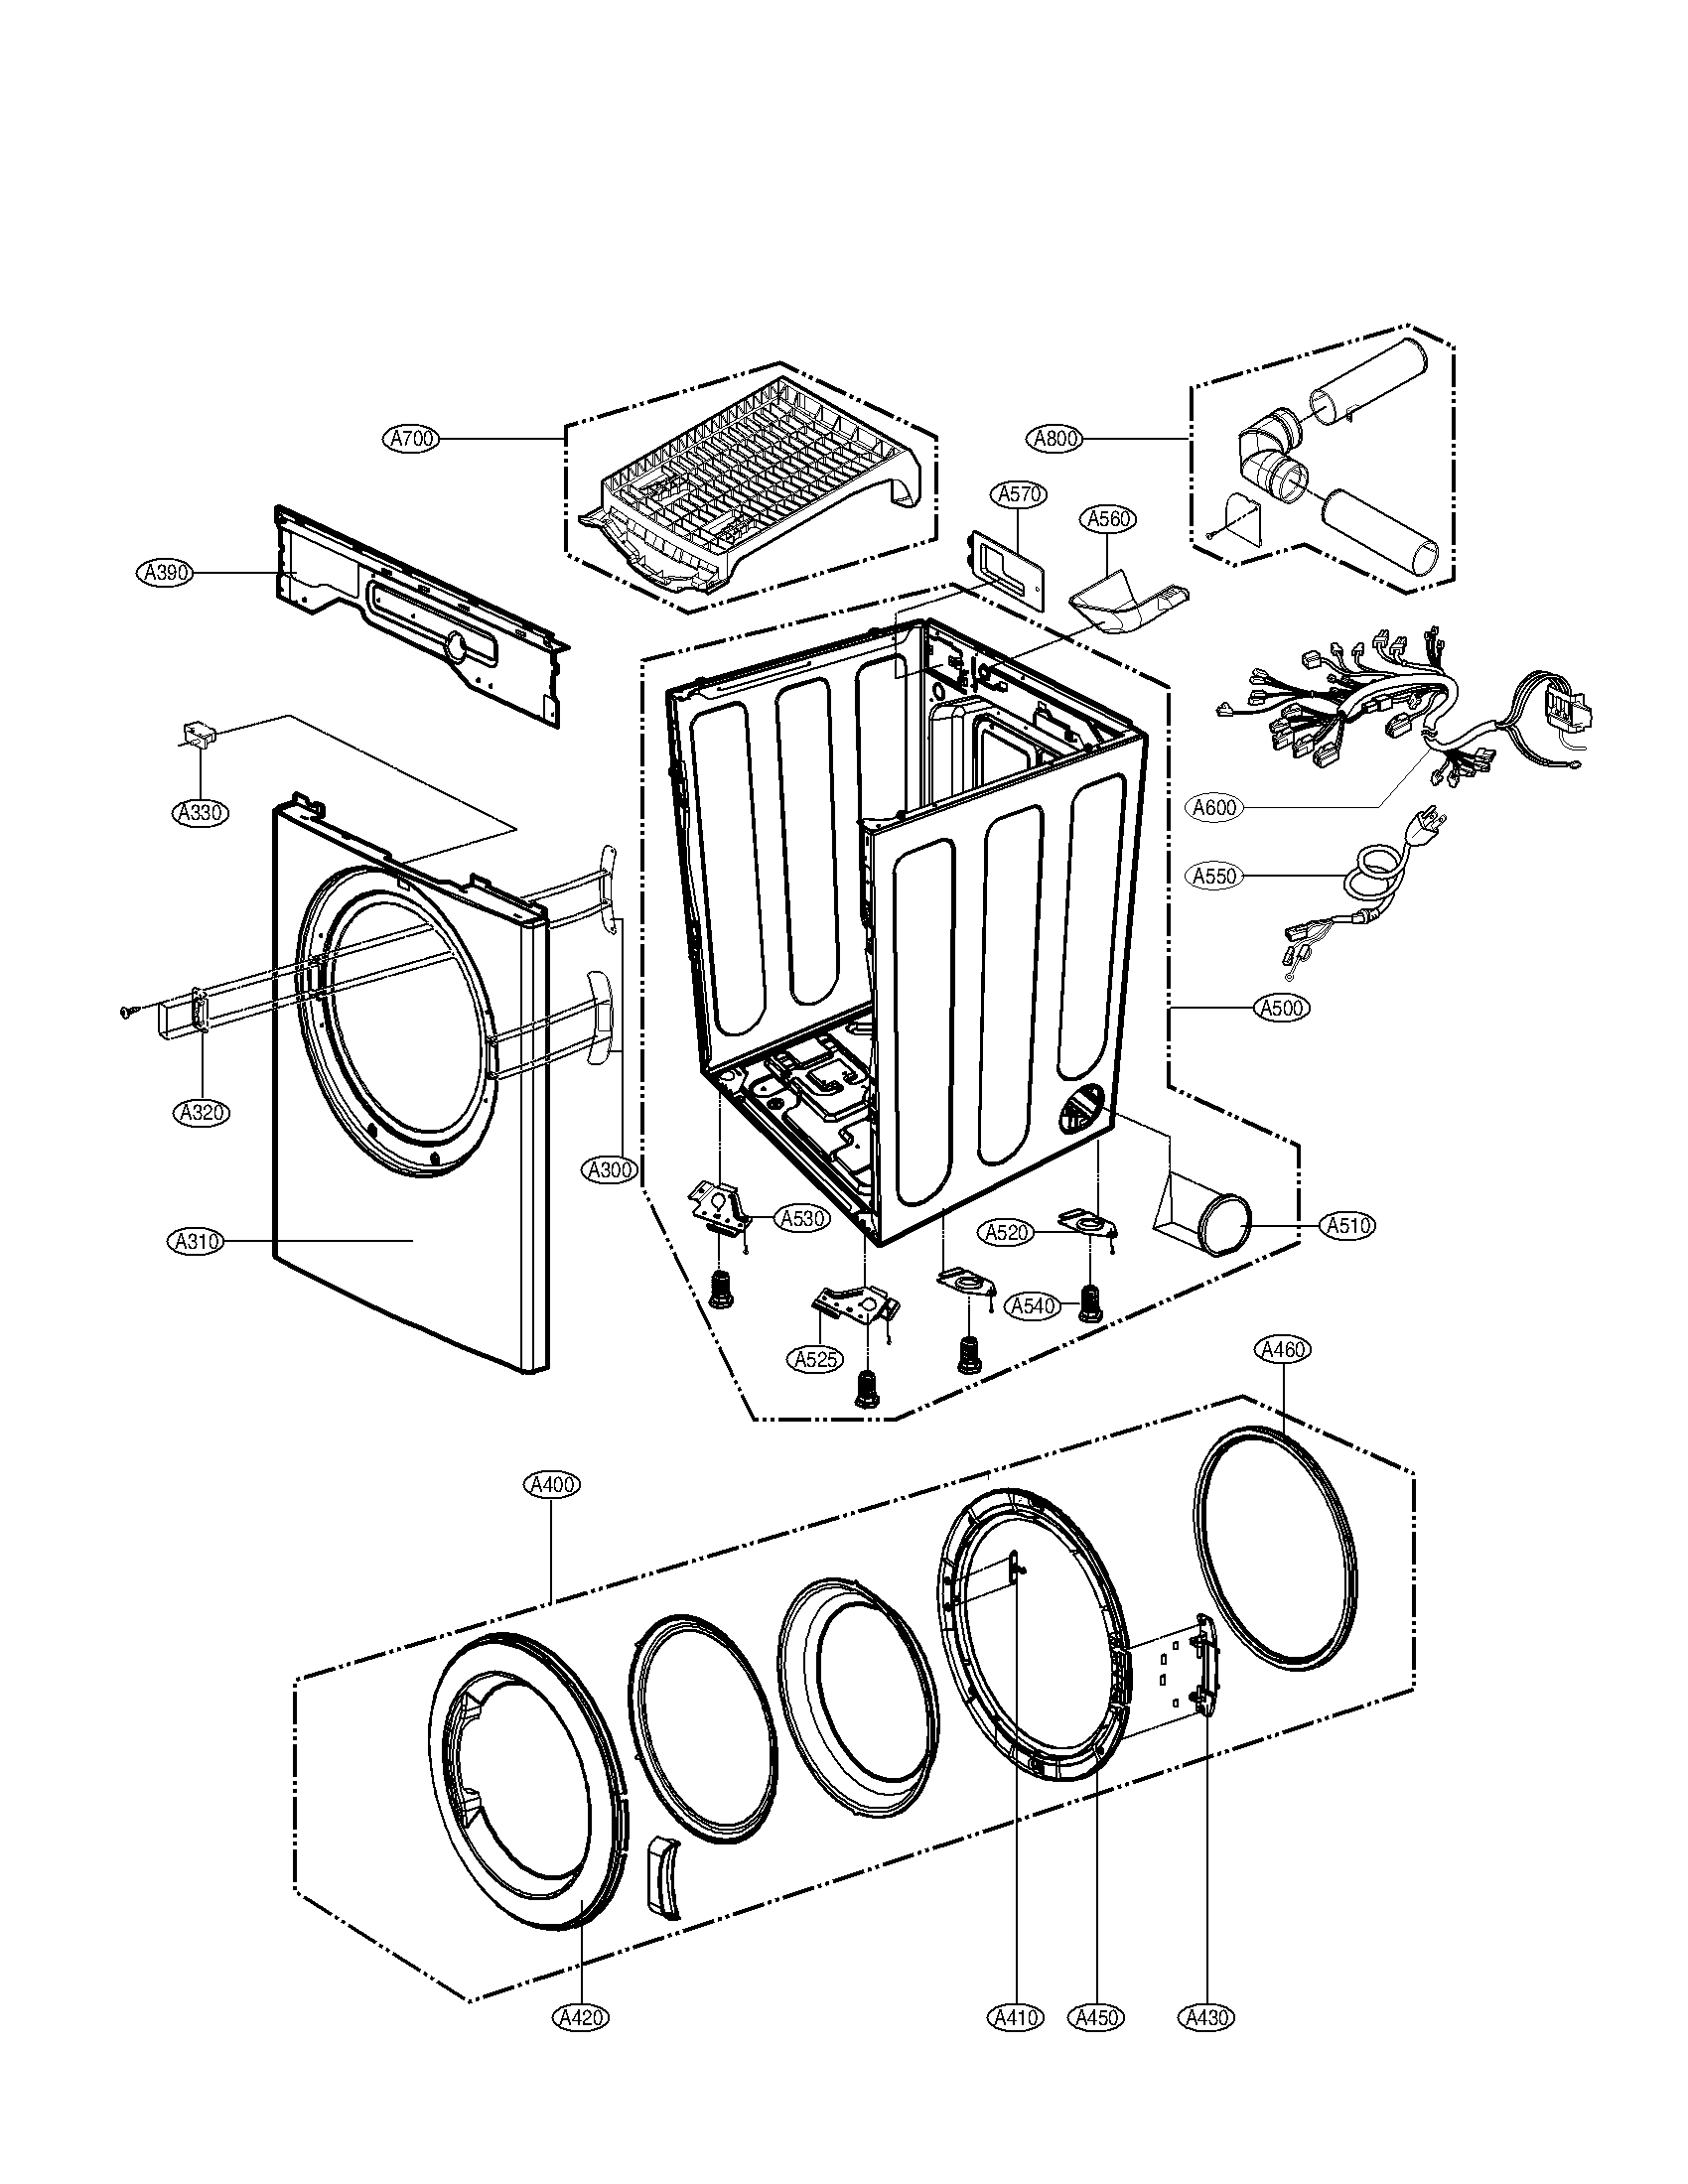 My Dryer Makes A Loud Grinding Noise During Operation  It